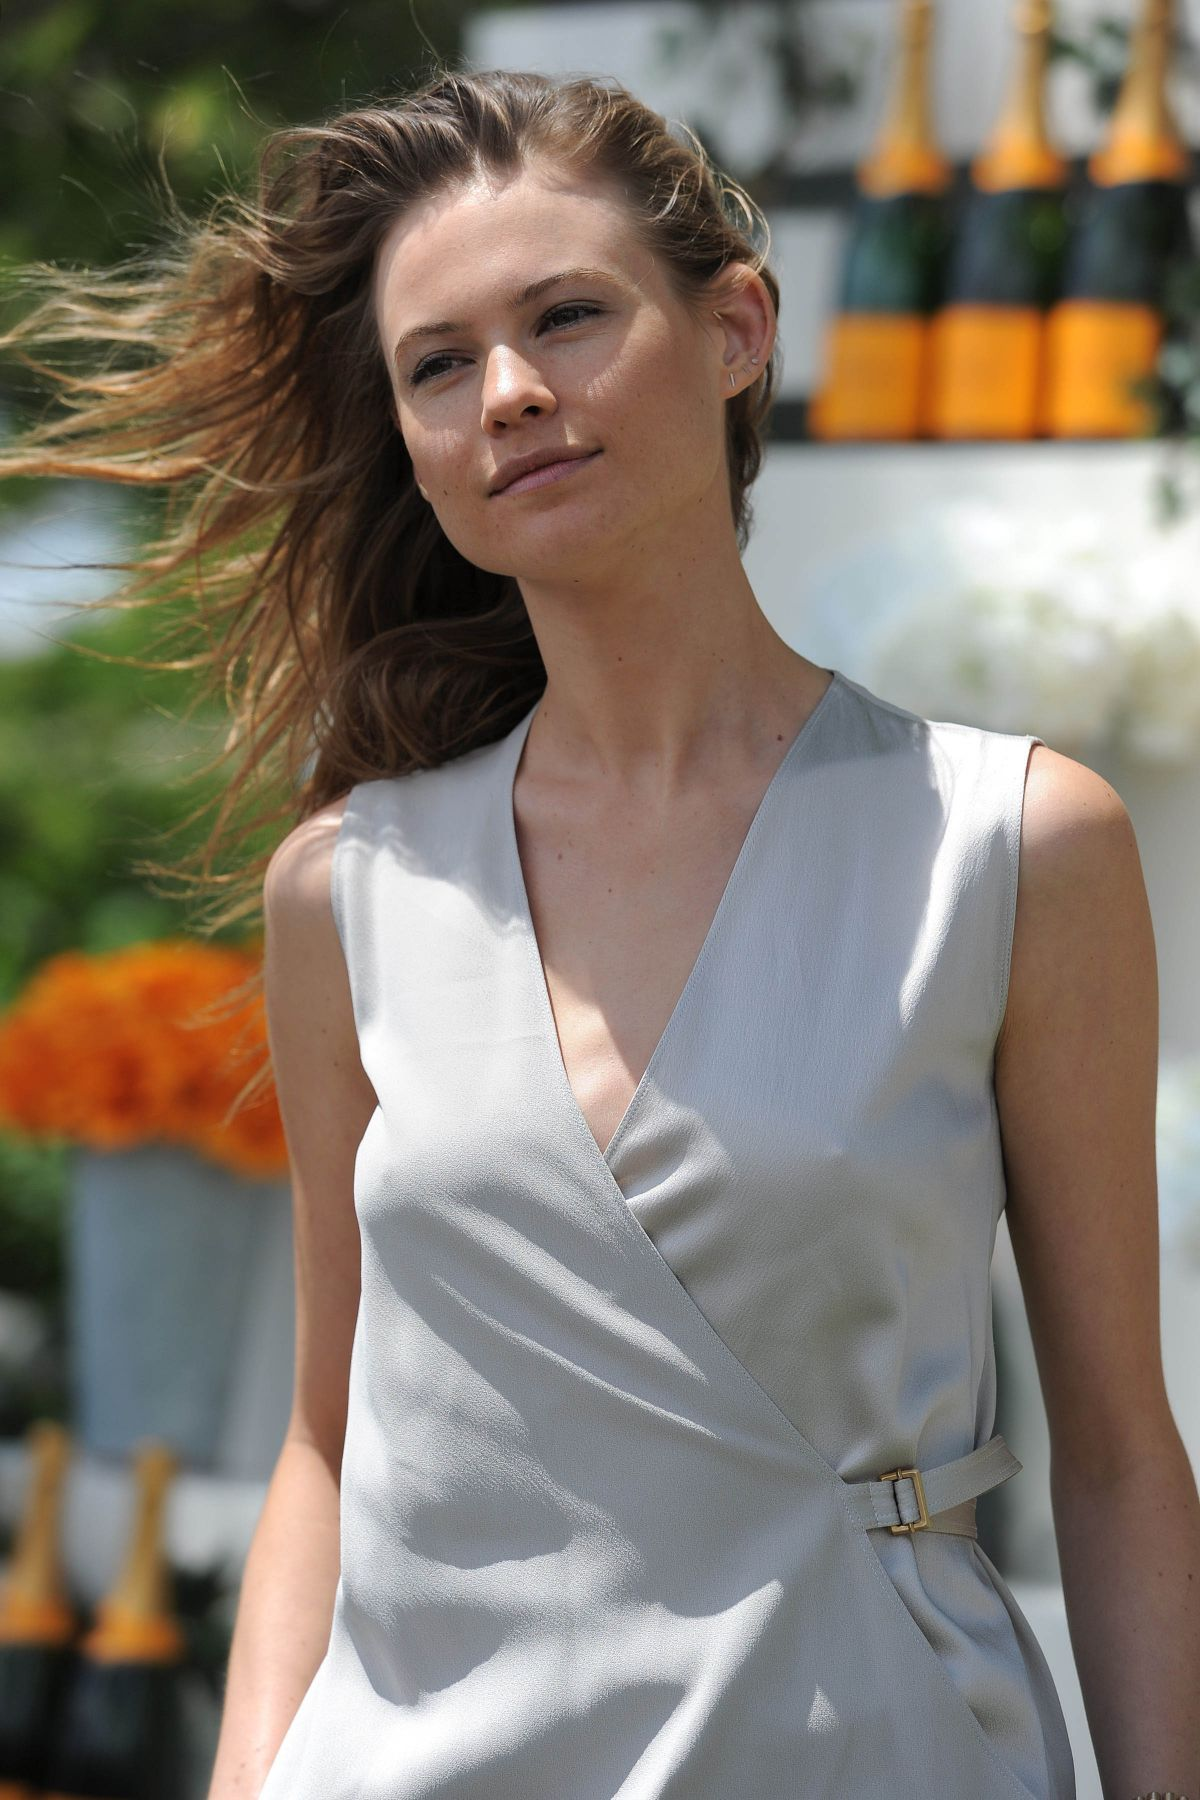 behati prinsloo at veuve clicquot polo classic in jersey